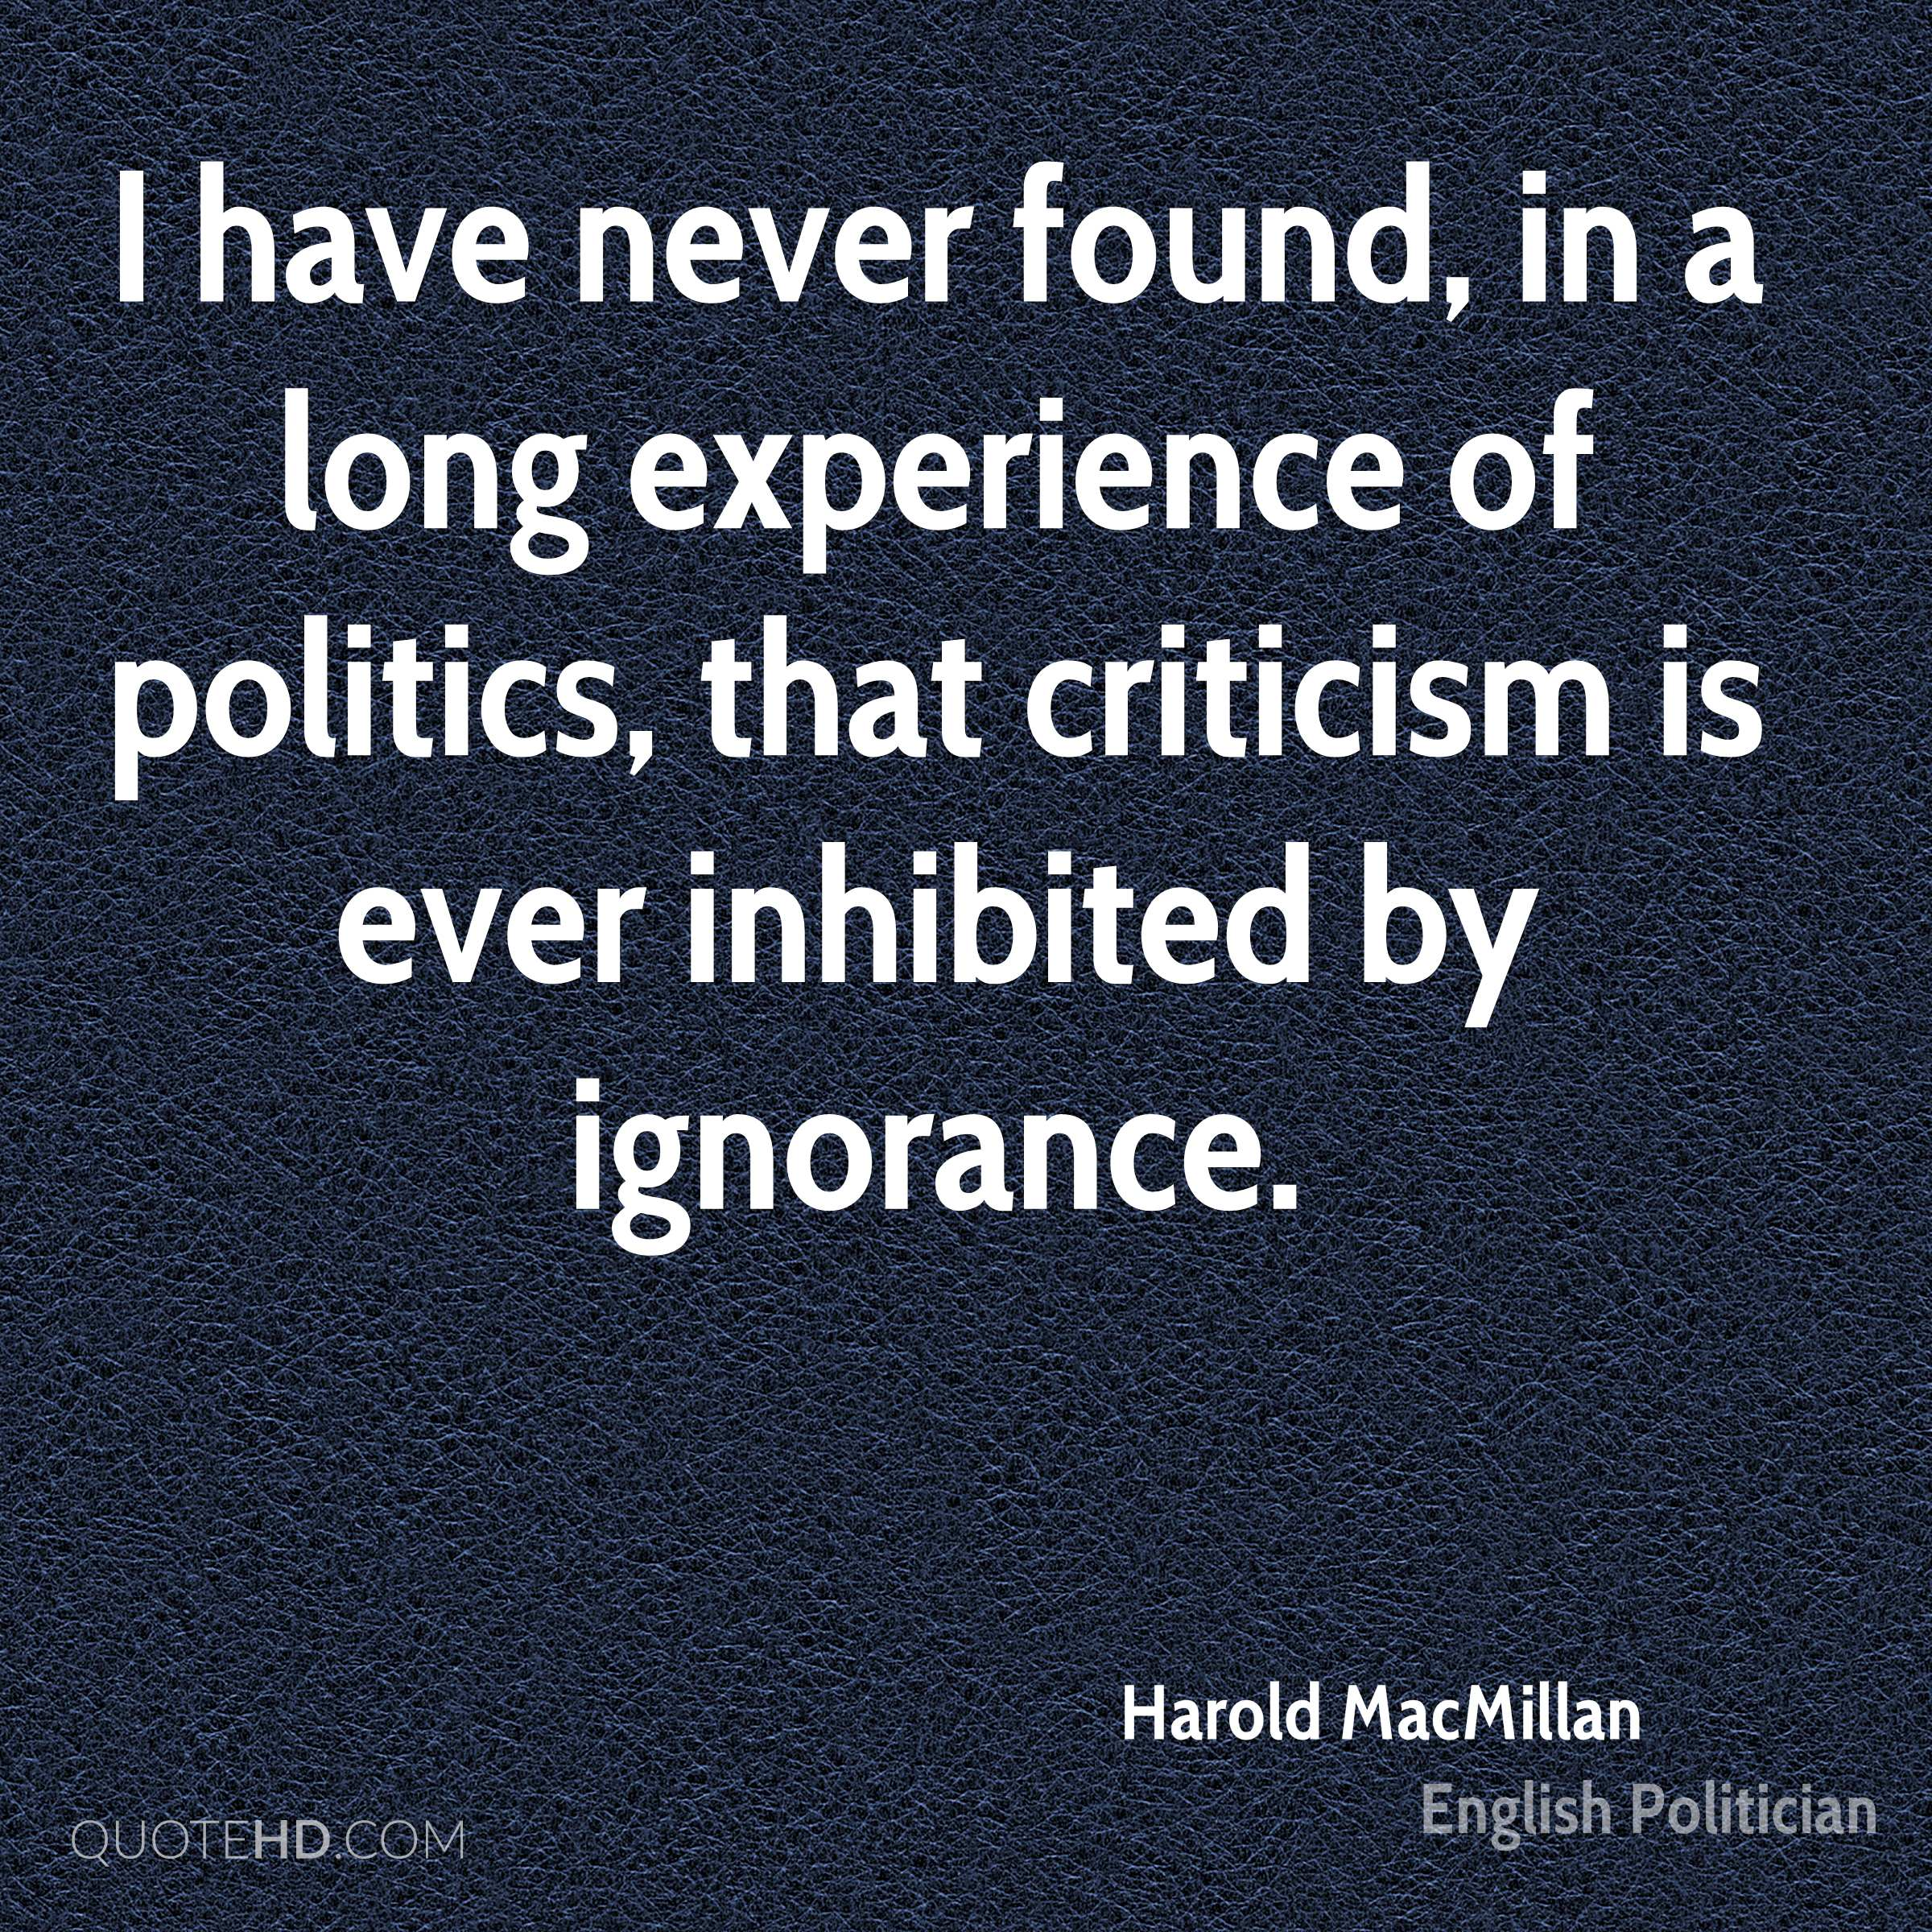 I have never found, in a long experience of politics, that criticism is ever inhibited by ignorance.